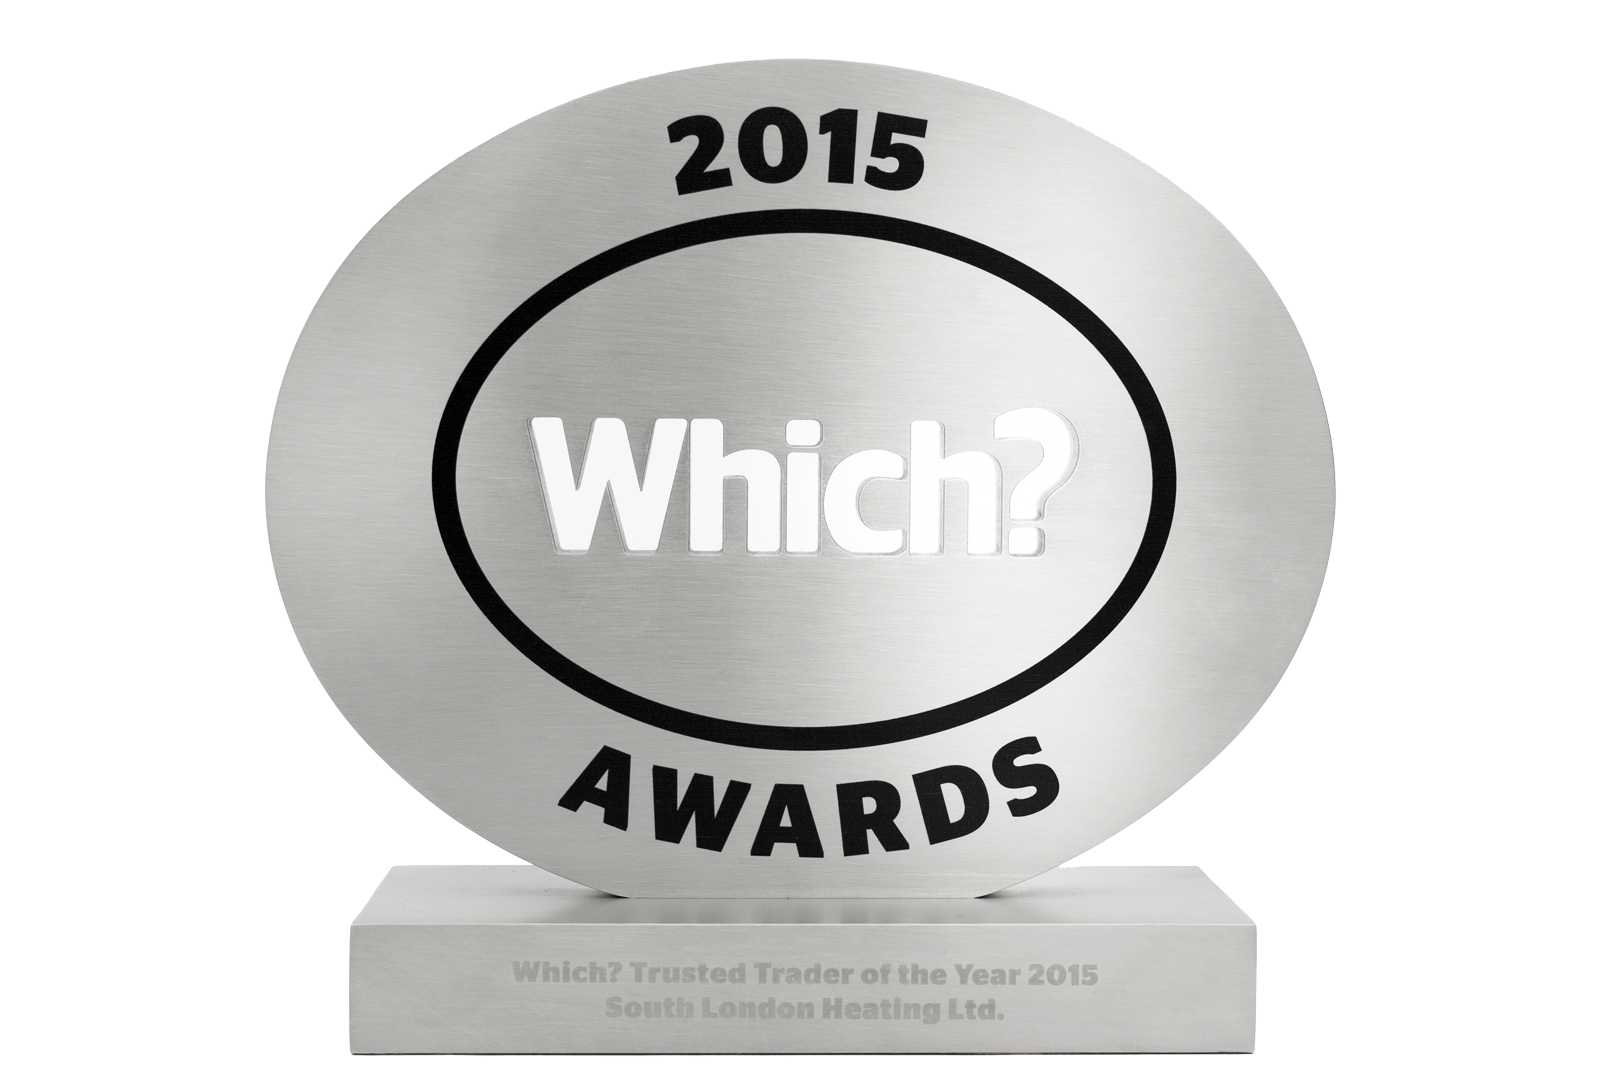 South London Heating - Award Winning Heating Which? Awards 2015 Trusted Trader of the Year Winner